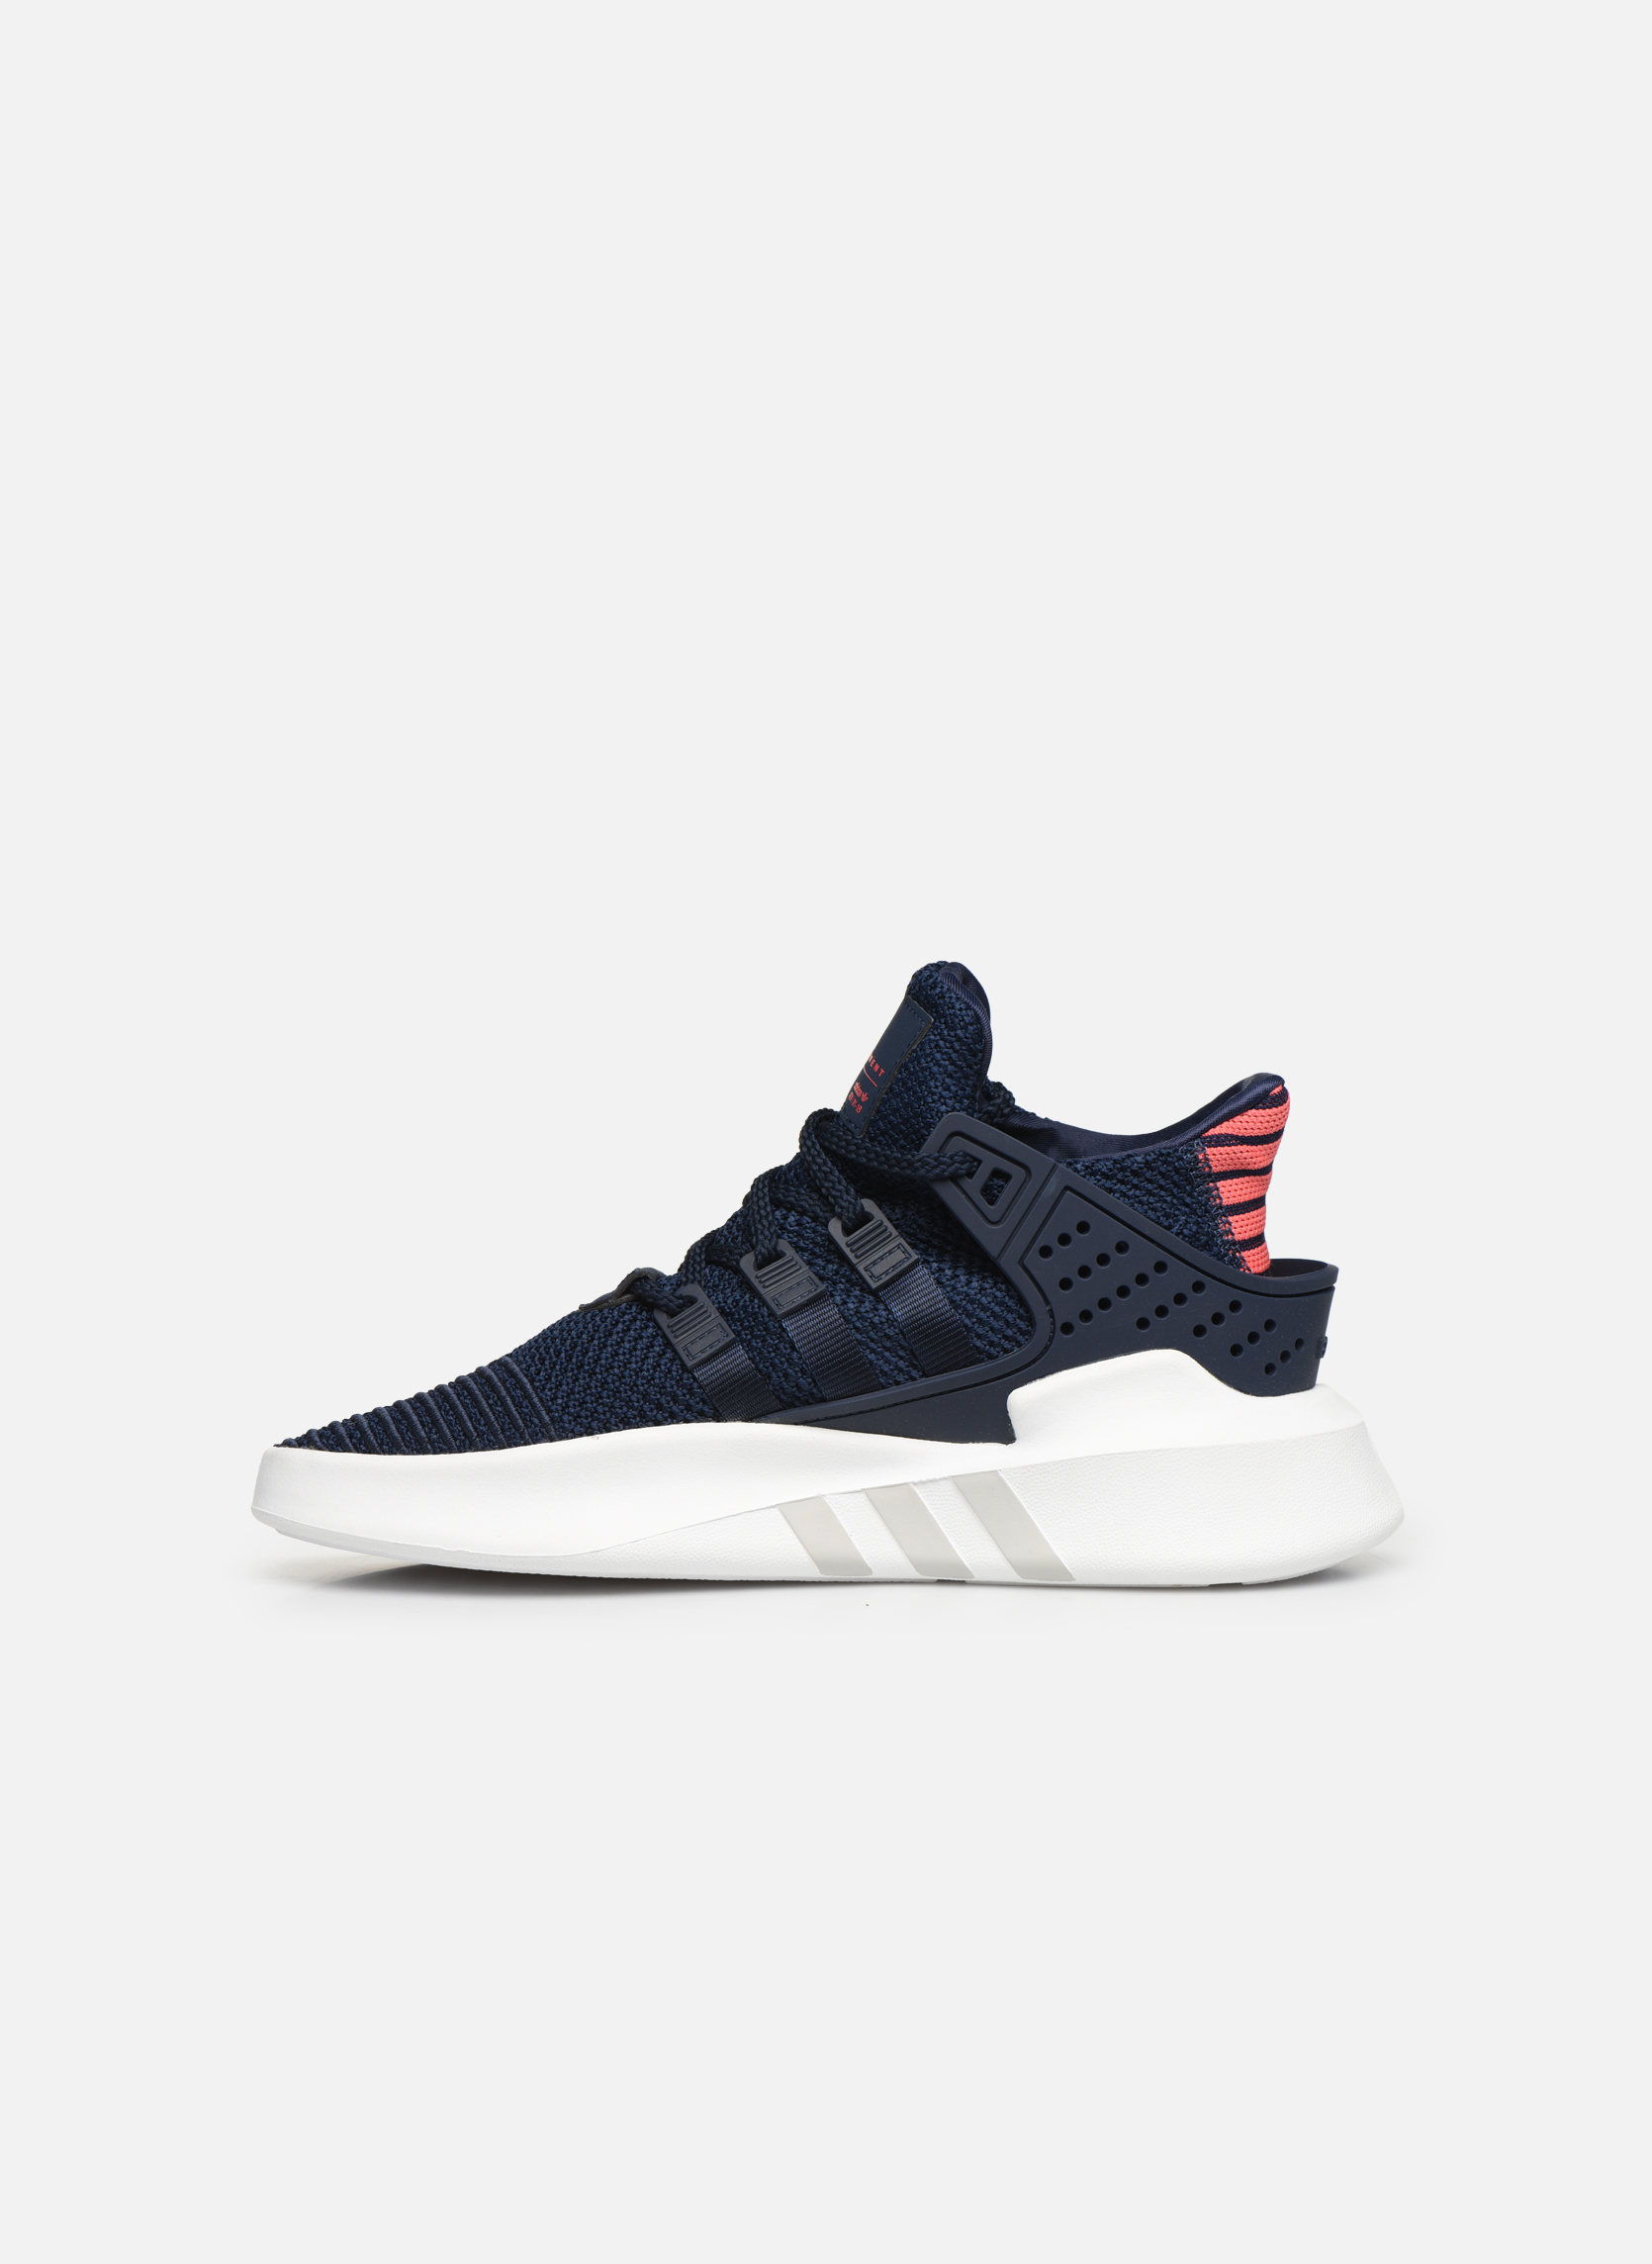 Baskets Adidas Originals Eqt Bask Adv J Bleu vue face